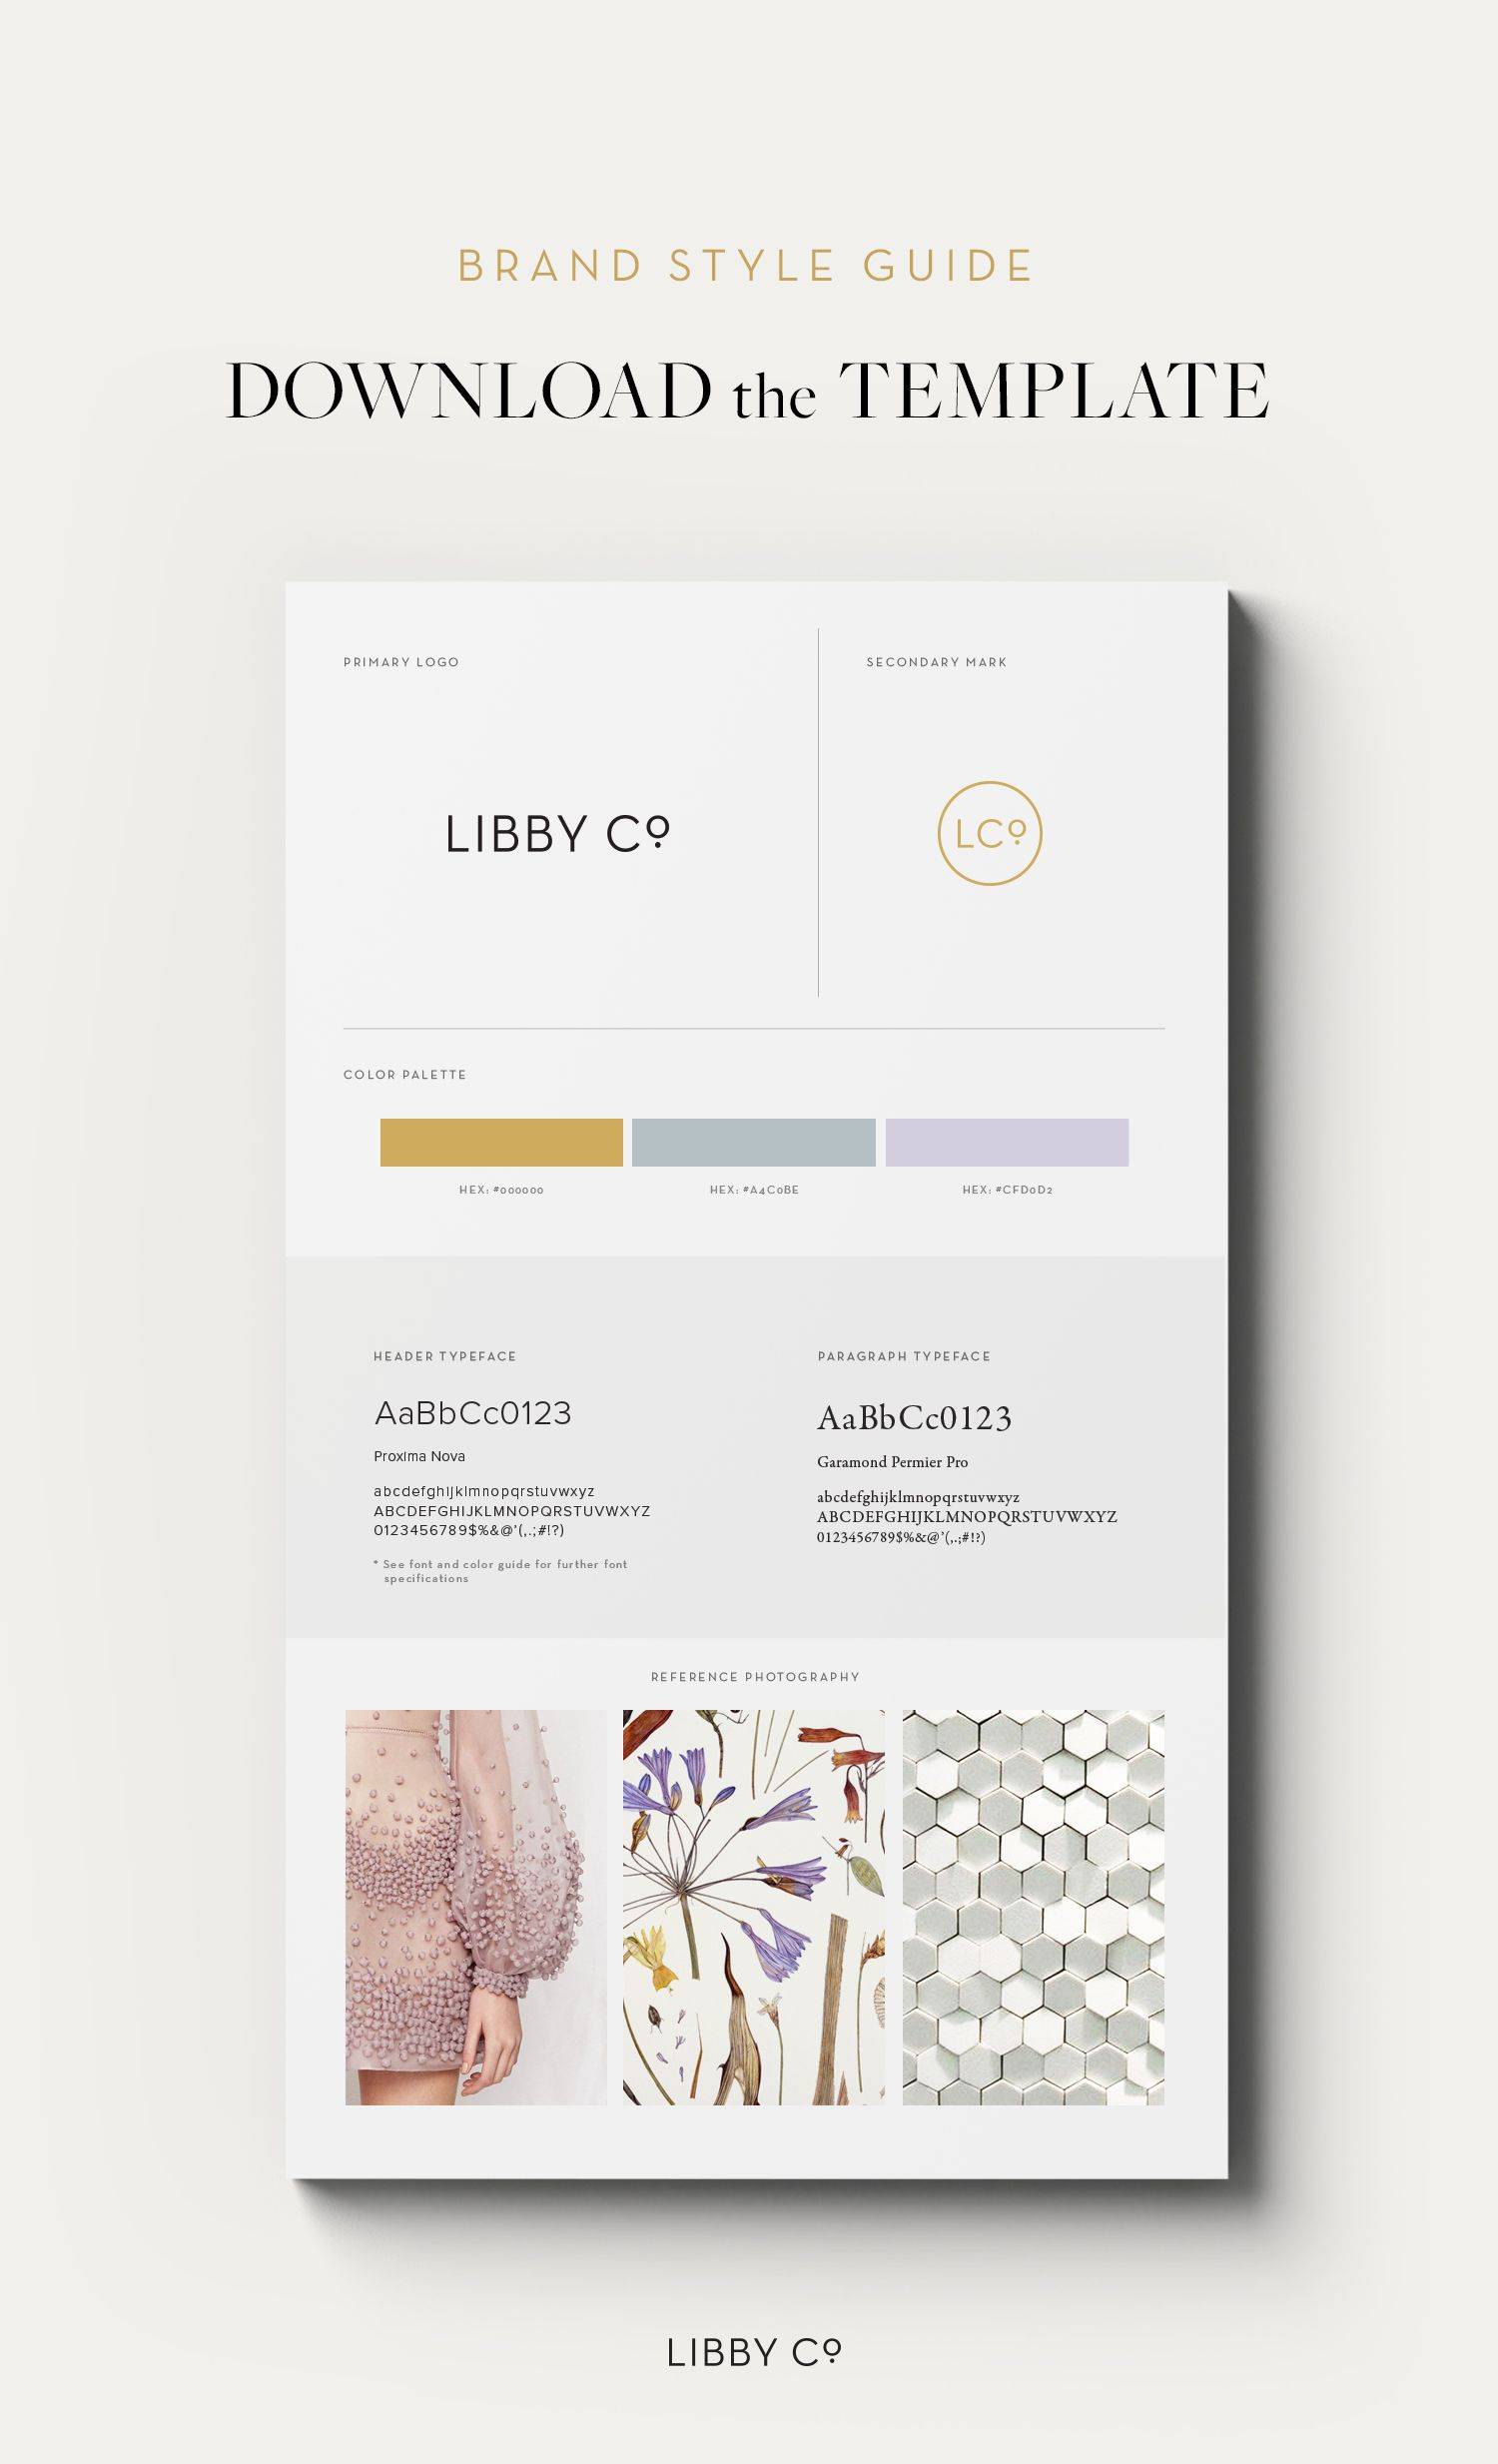 Free Brand Style Guide Template Design Pinterest Brand Style